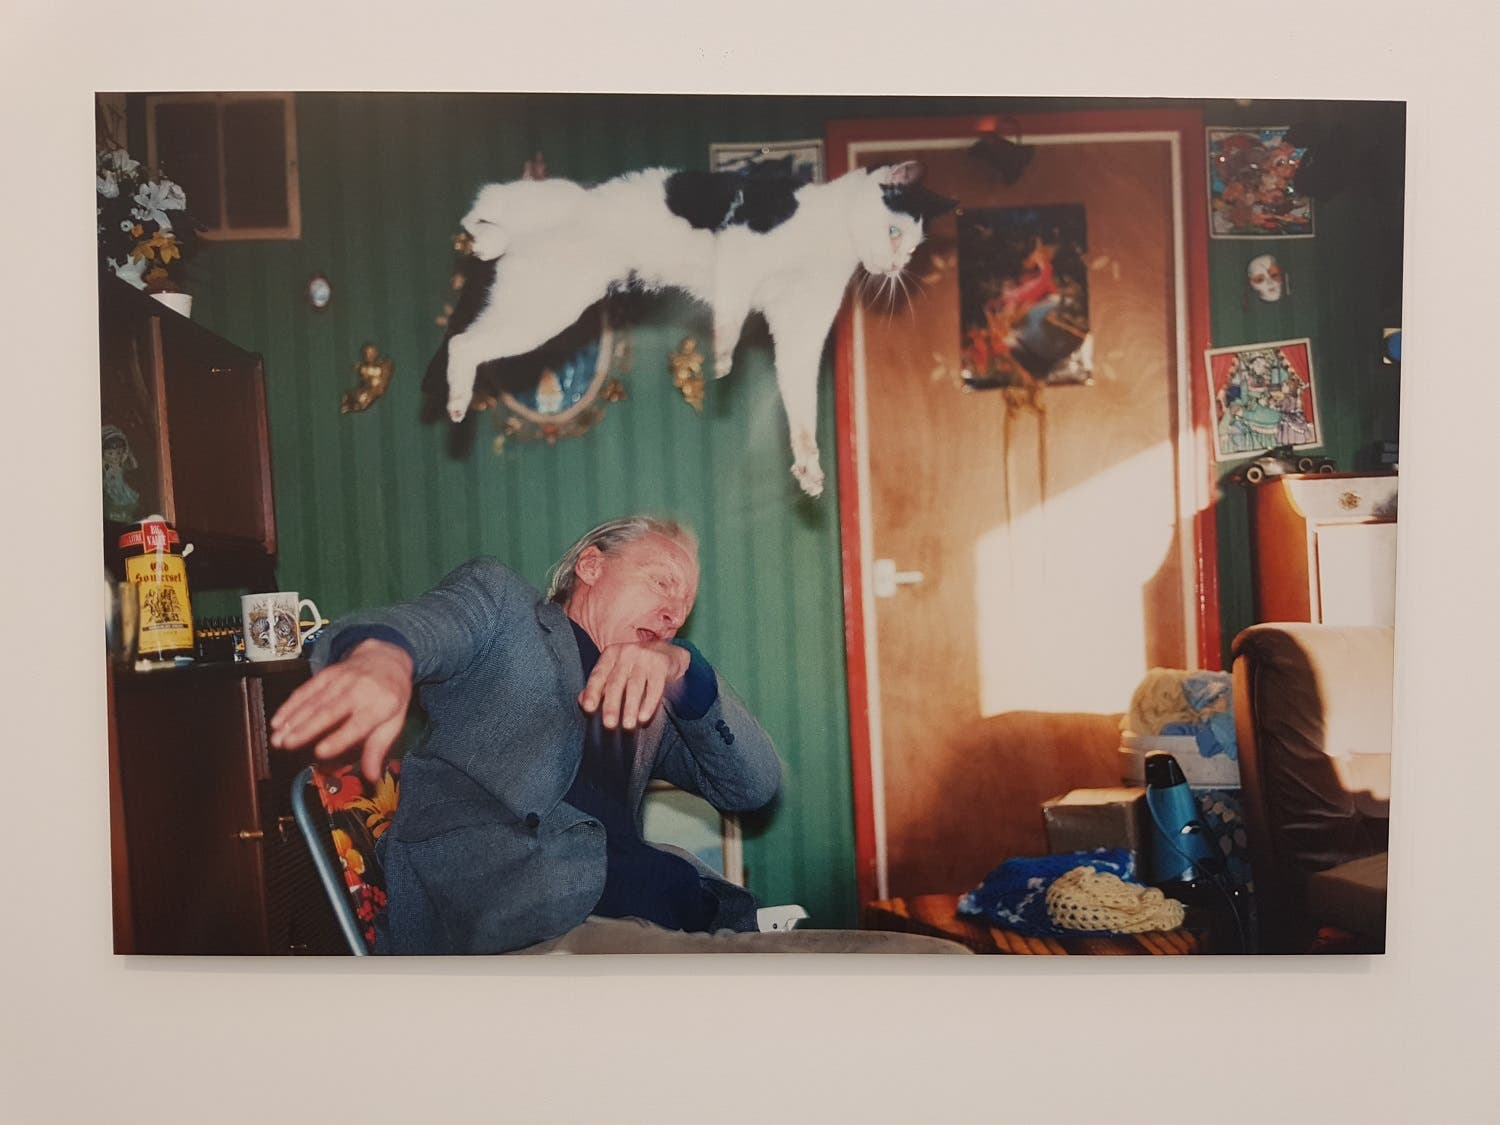 """A photo from the """"Ray's a Laugh"""" series (1996) by  Richard Billingham at the Anthony Reynolds Gallery booth. (Saffiya Ansari/ Al Arabiya English)"""